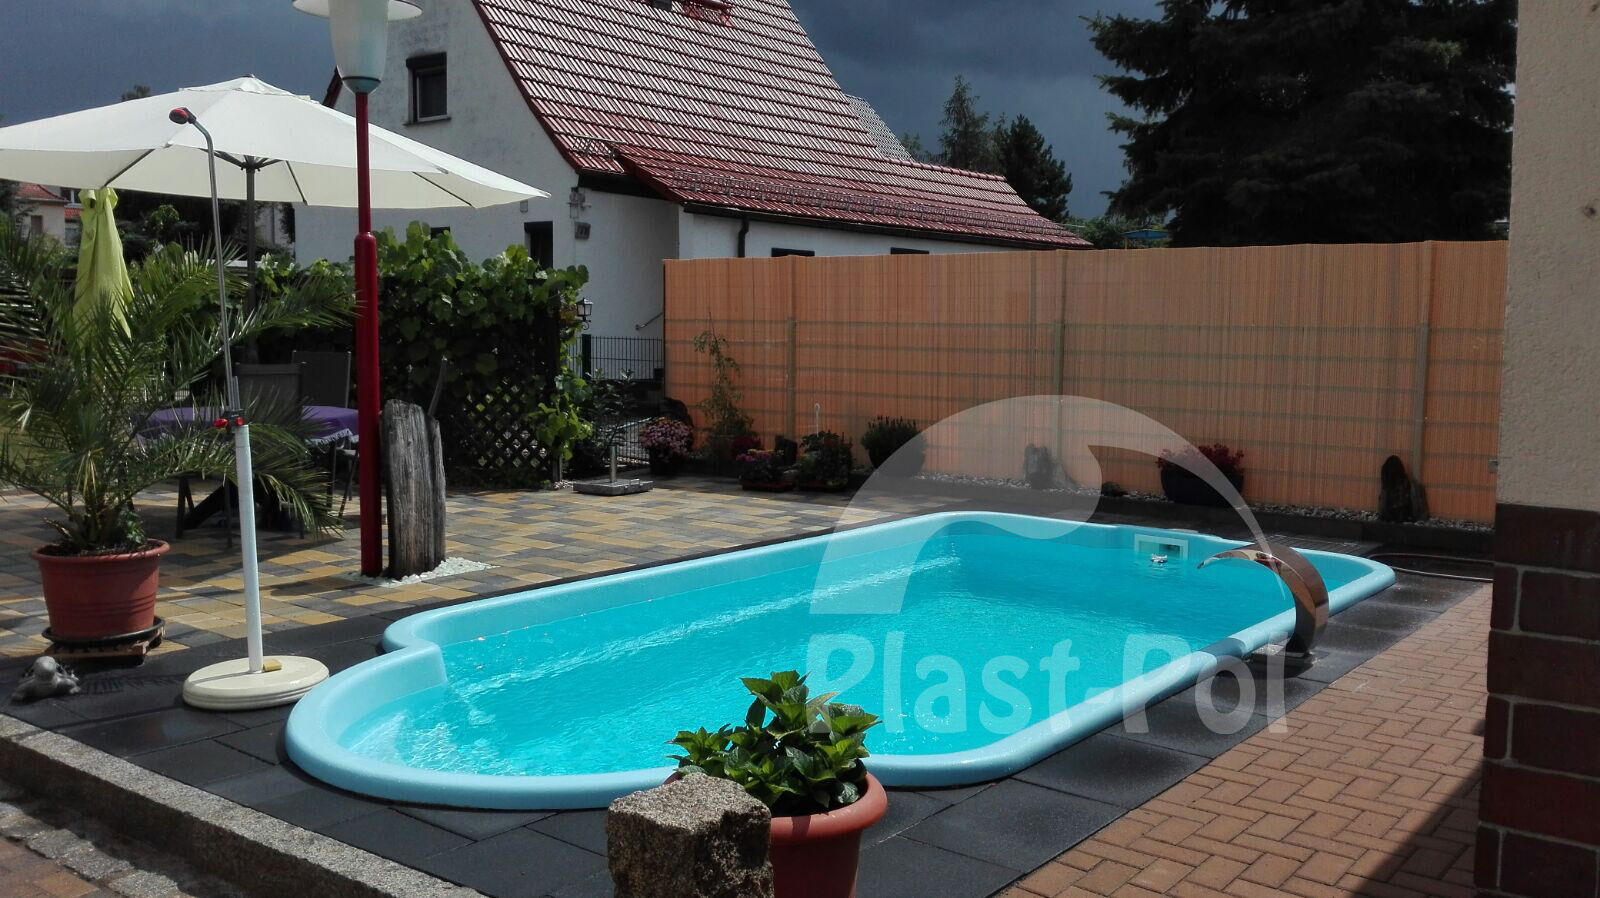 gfk schwimmbecken 5 0x3 00x1 50 swimming pool fertigbecken gartenpool eur picclick at. Black Bedroom Furniture Sets. Home Design Ideas